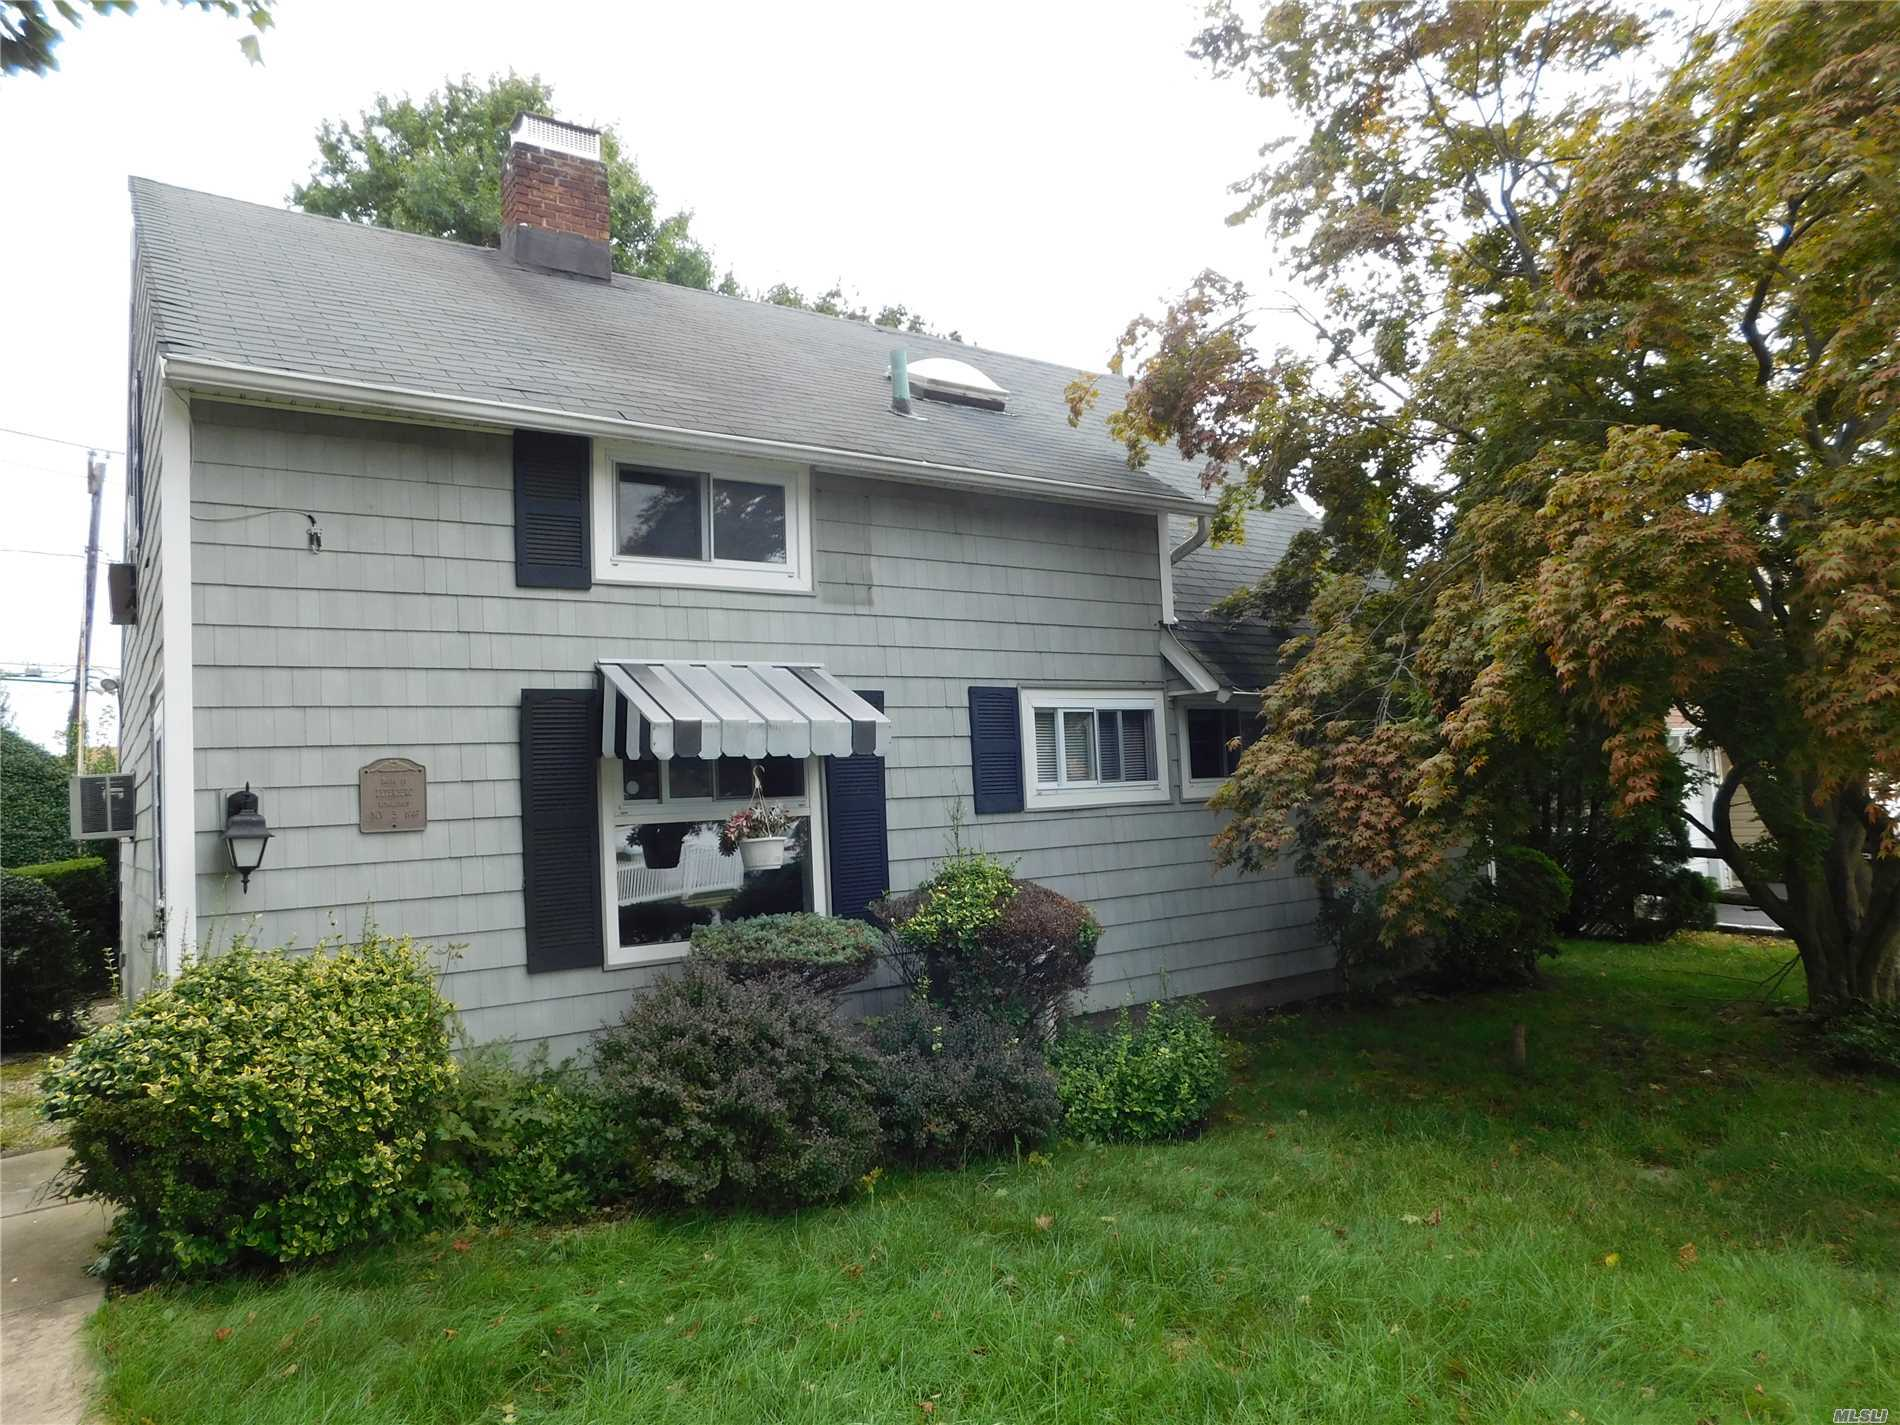 ***Lowest Priced House Levittown..Sd 26....Great Starter Home, Has 4 Bedrooms, 1.5 Baths, Enclosed Porch, Above Ground Oil Tank, Vynl Sided, Island Trees School............Best Buy Levittown, Needs Some Tlc, But Potenional Galore  *********Beat Paying Rent****